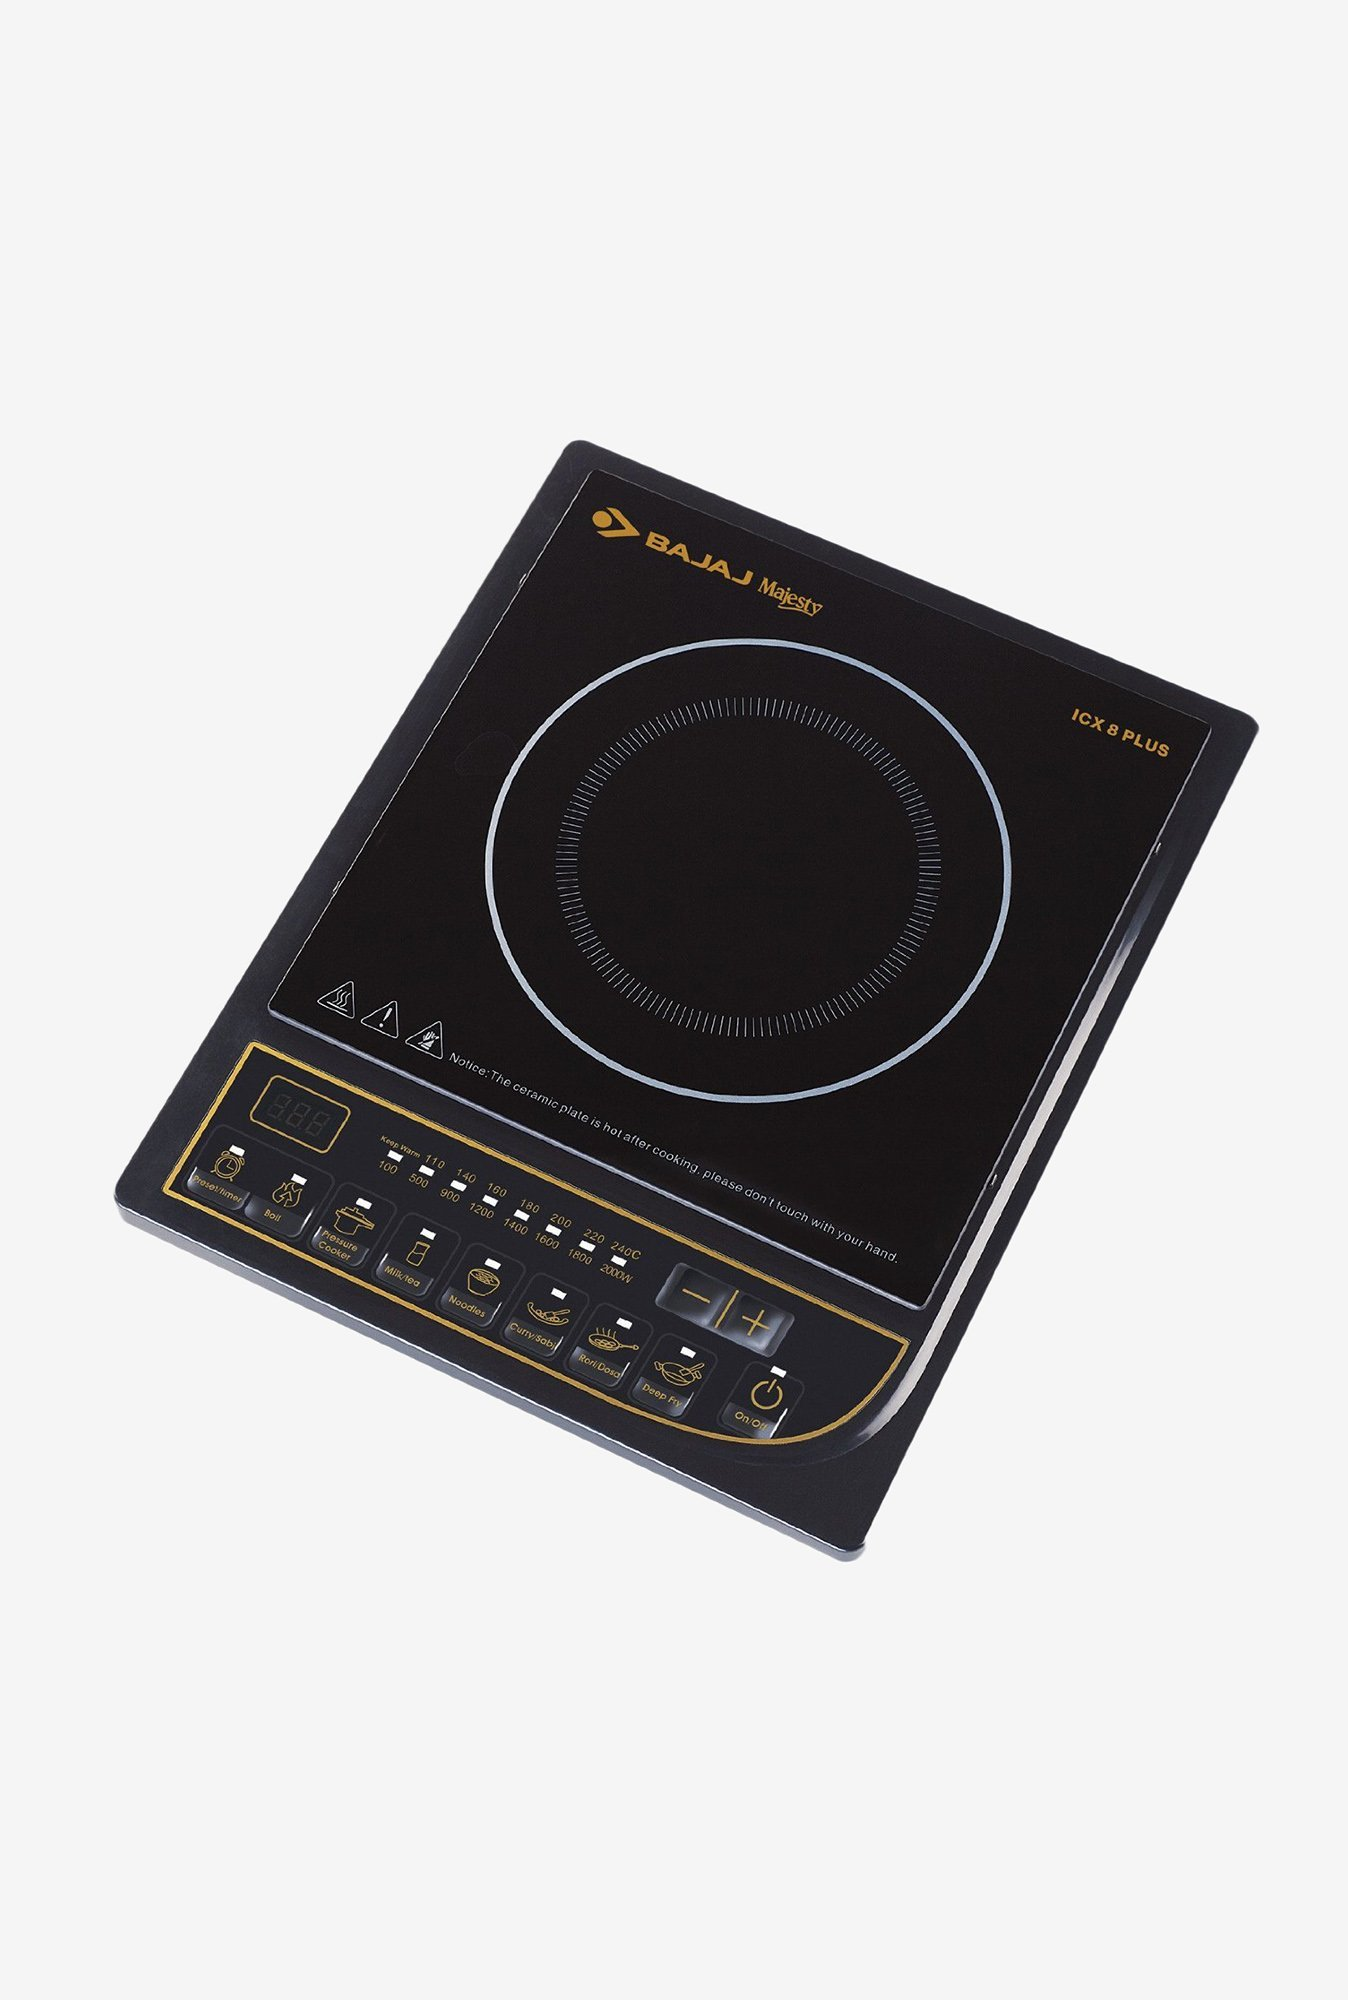 Bajaj Majesty 2000W ICX 8 Plus Induction Cooktop Black